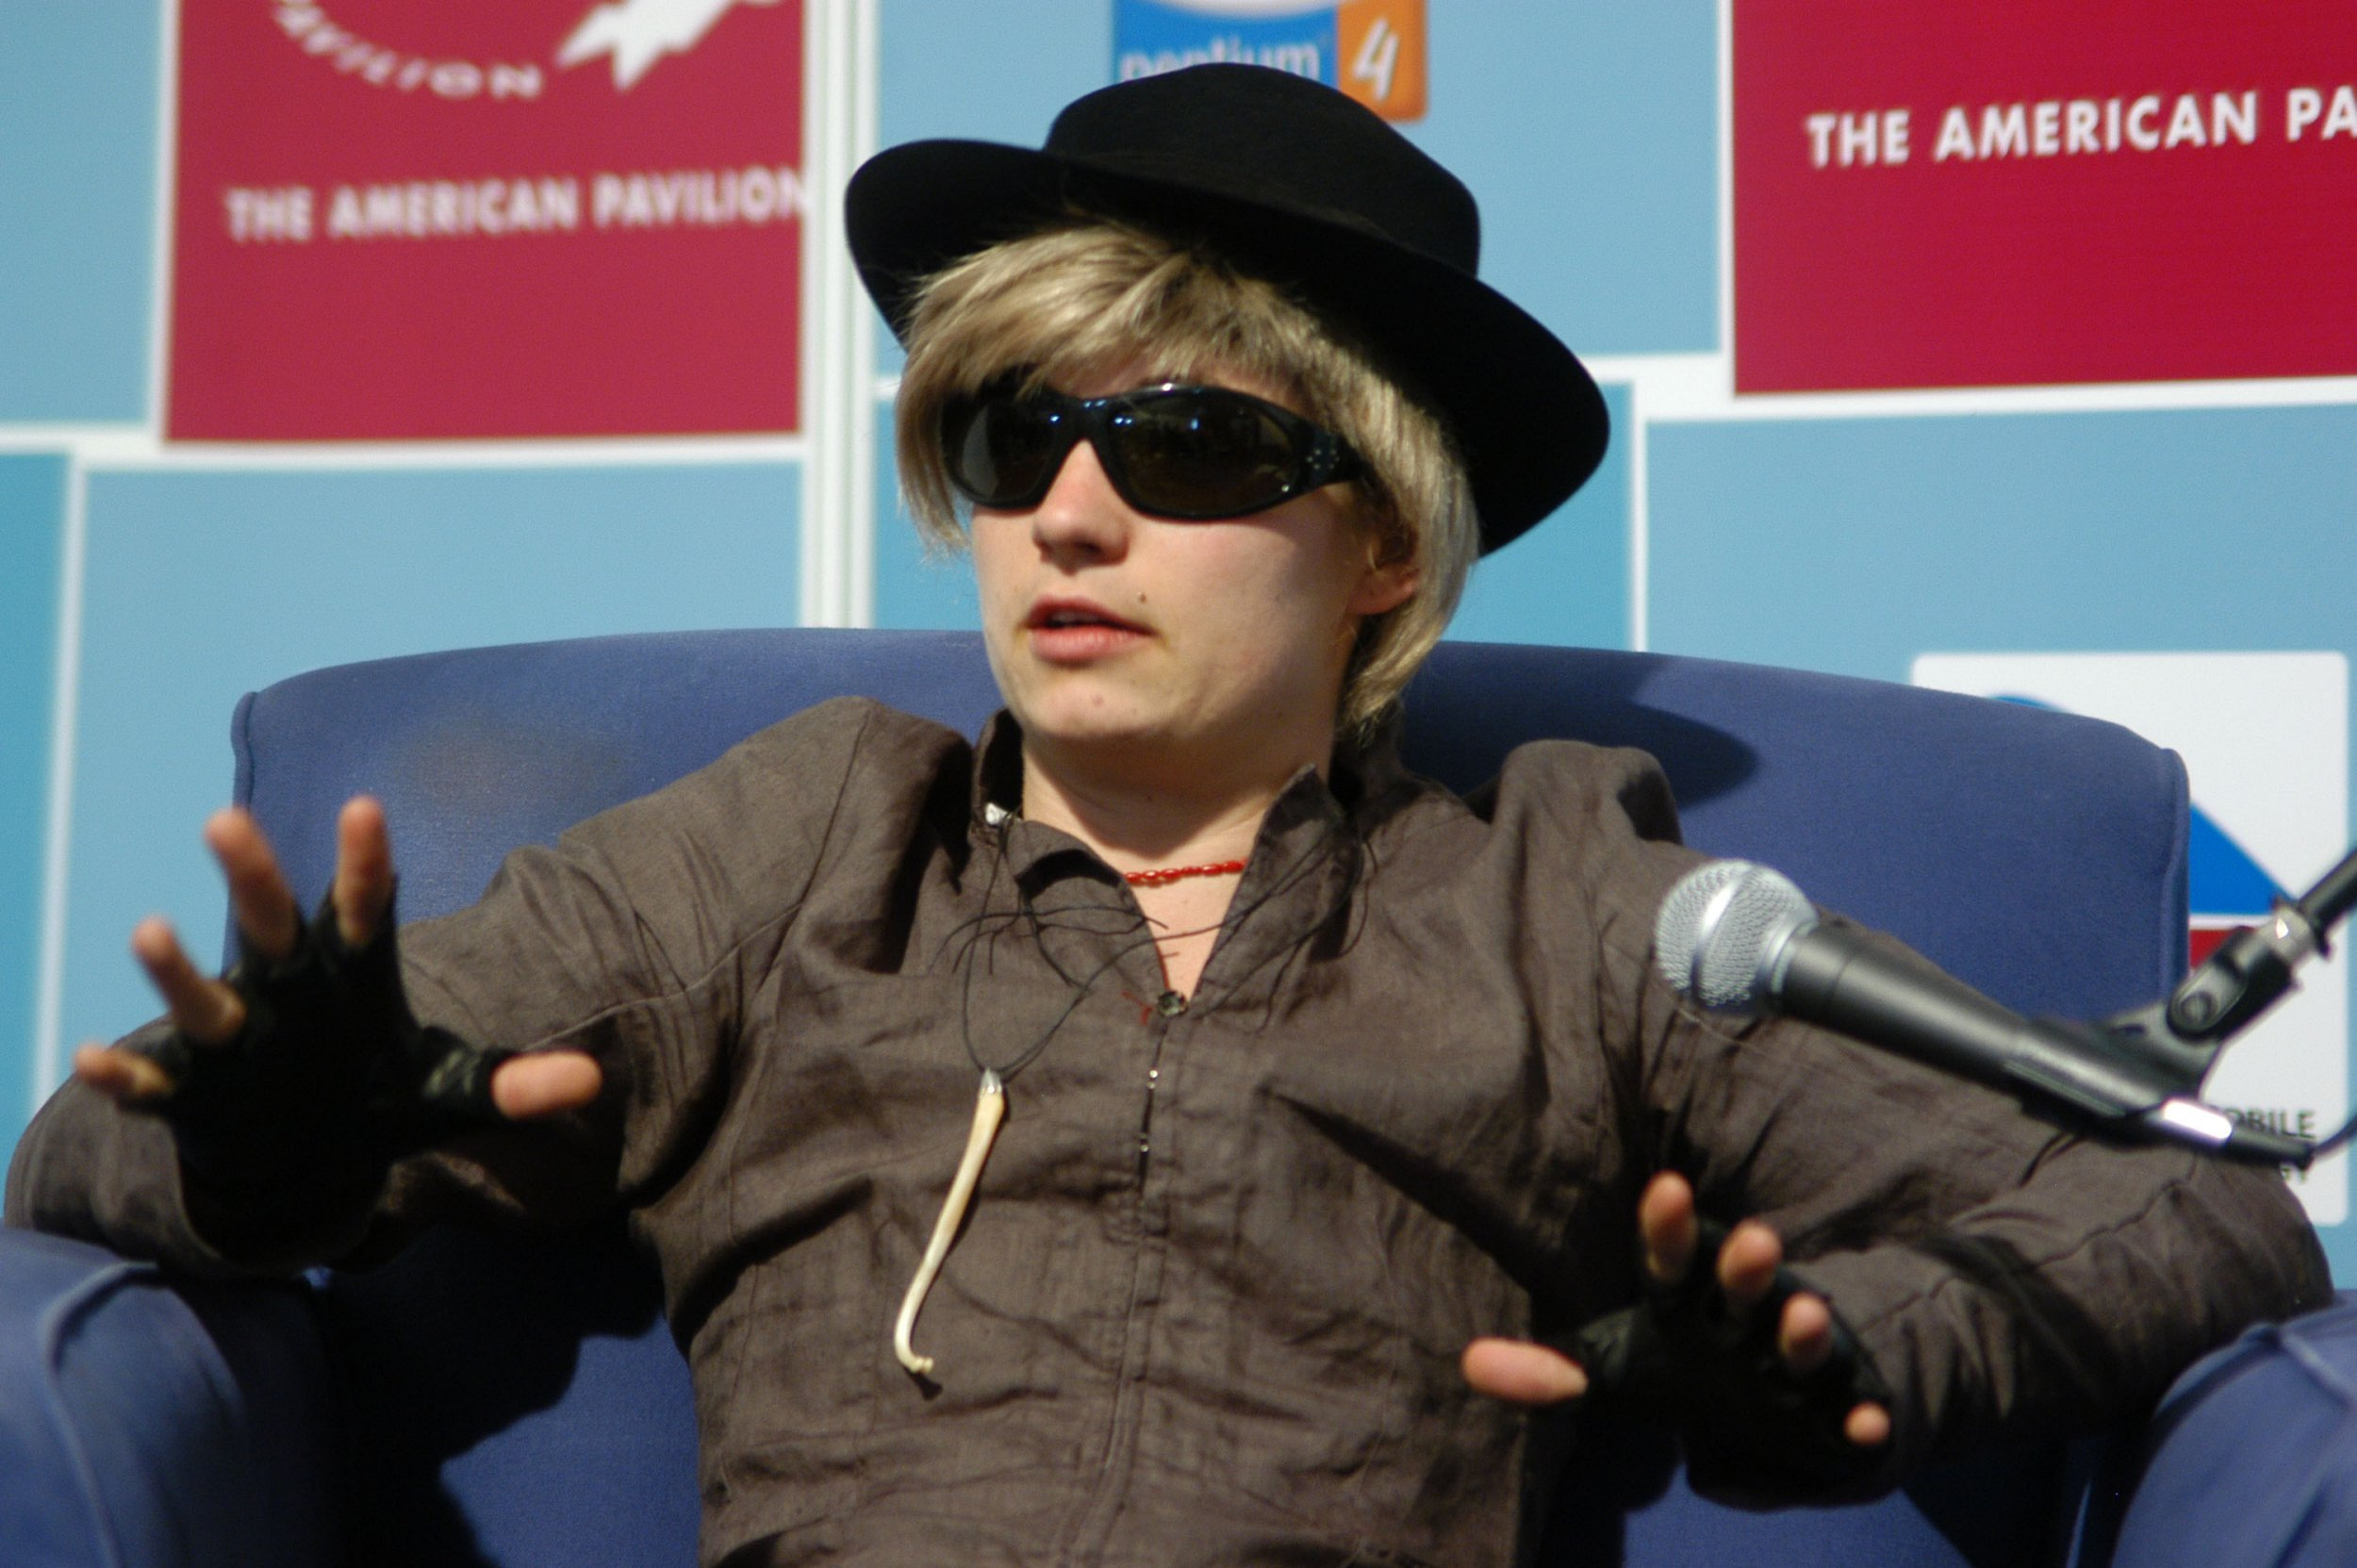 """""""JT LeRoy"""" (Savannah Knoop) during 2004 Cannes Film Festival - In Conversation with Asia Argento and """"JT LeRoy"""" at American Pavilion in Cannes, France. (Photo by Rebecca Sapp/WireImage)"""